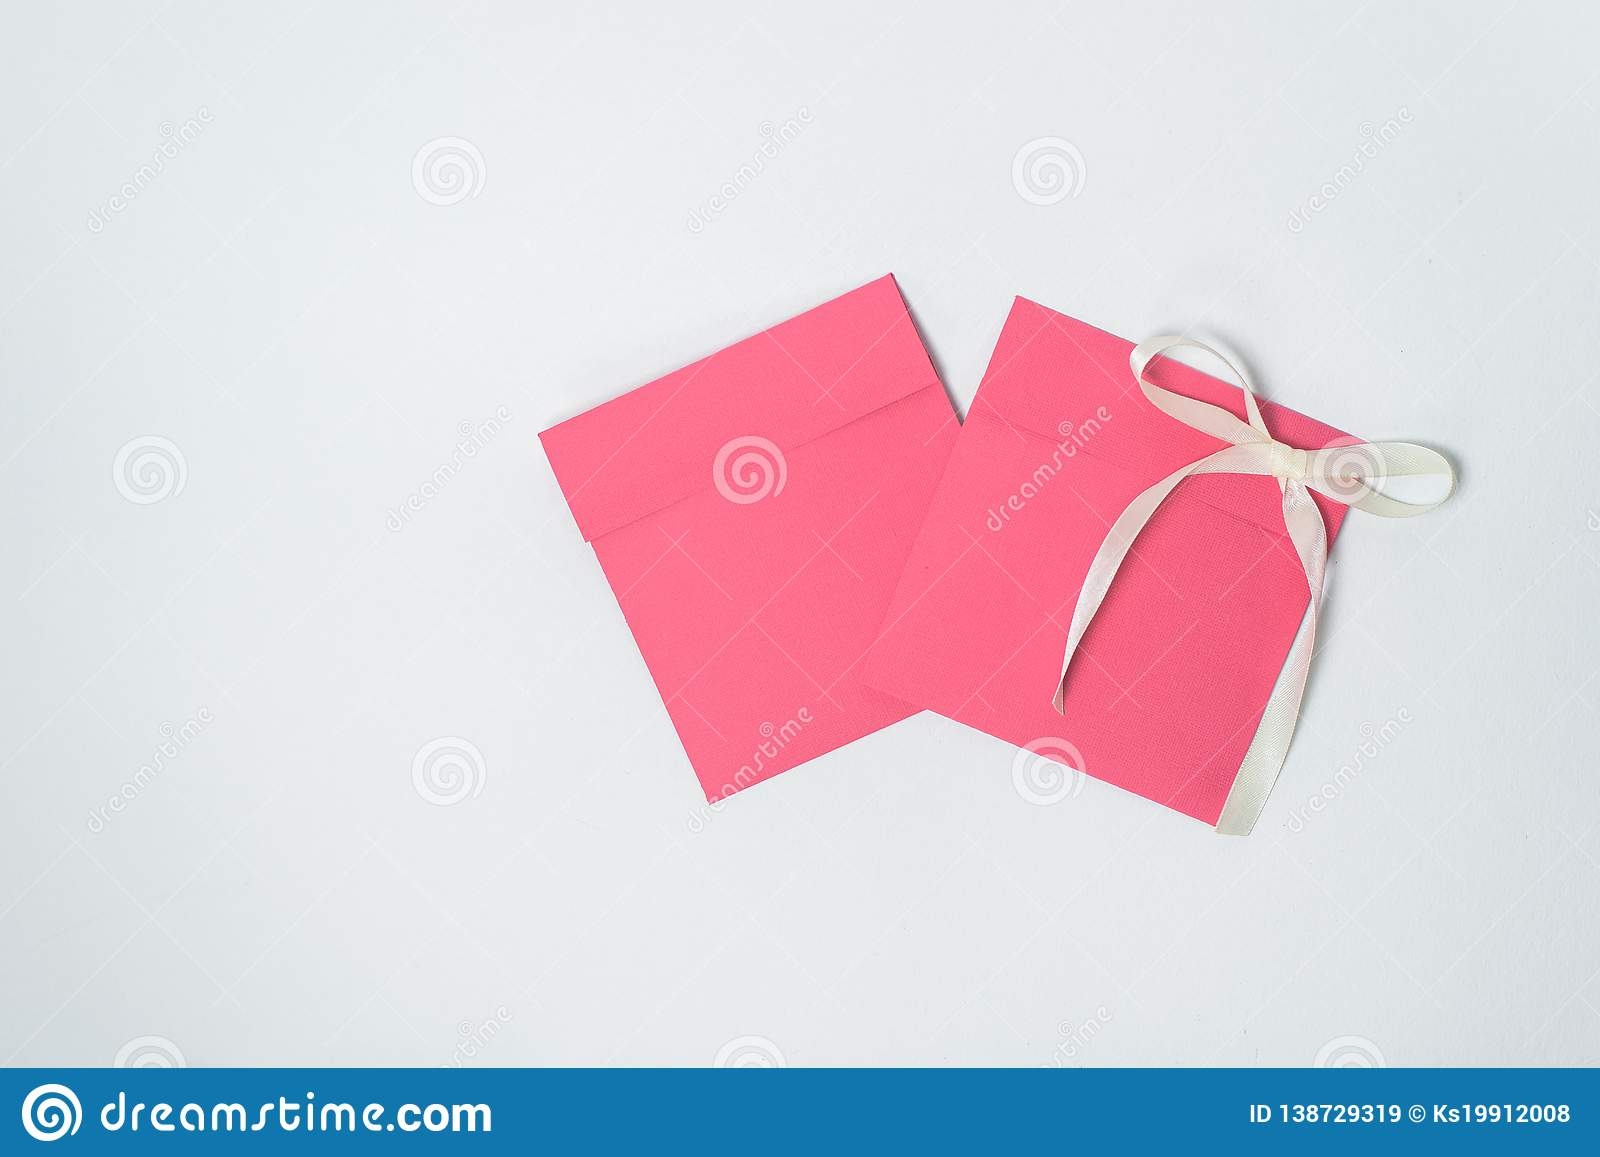 Two red envelope with yellow ribbon in the shape of a bow for CD, square envelope